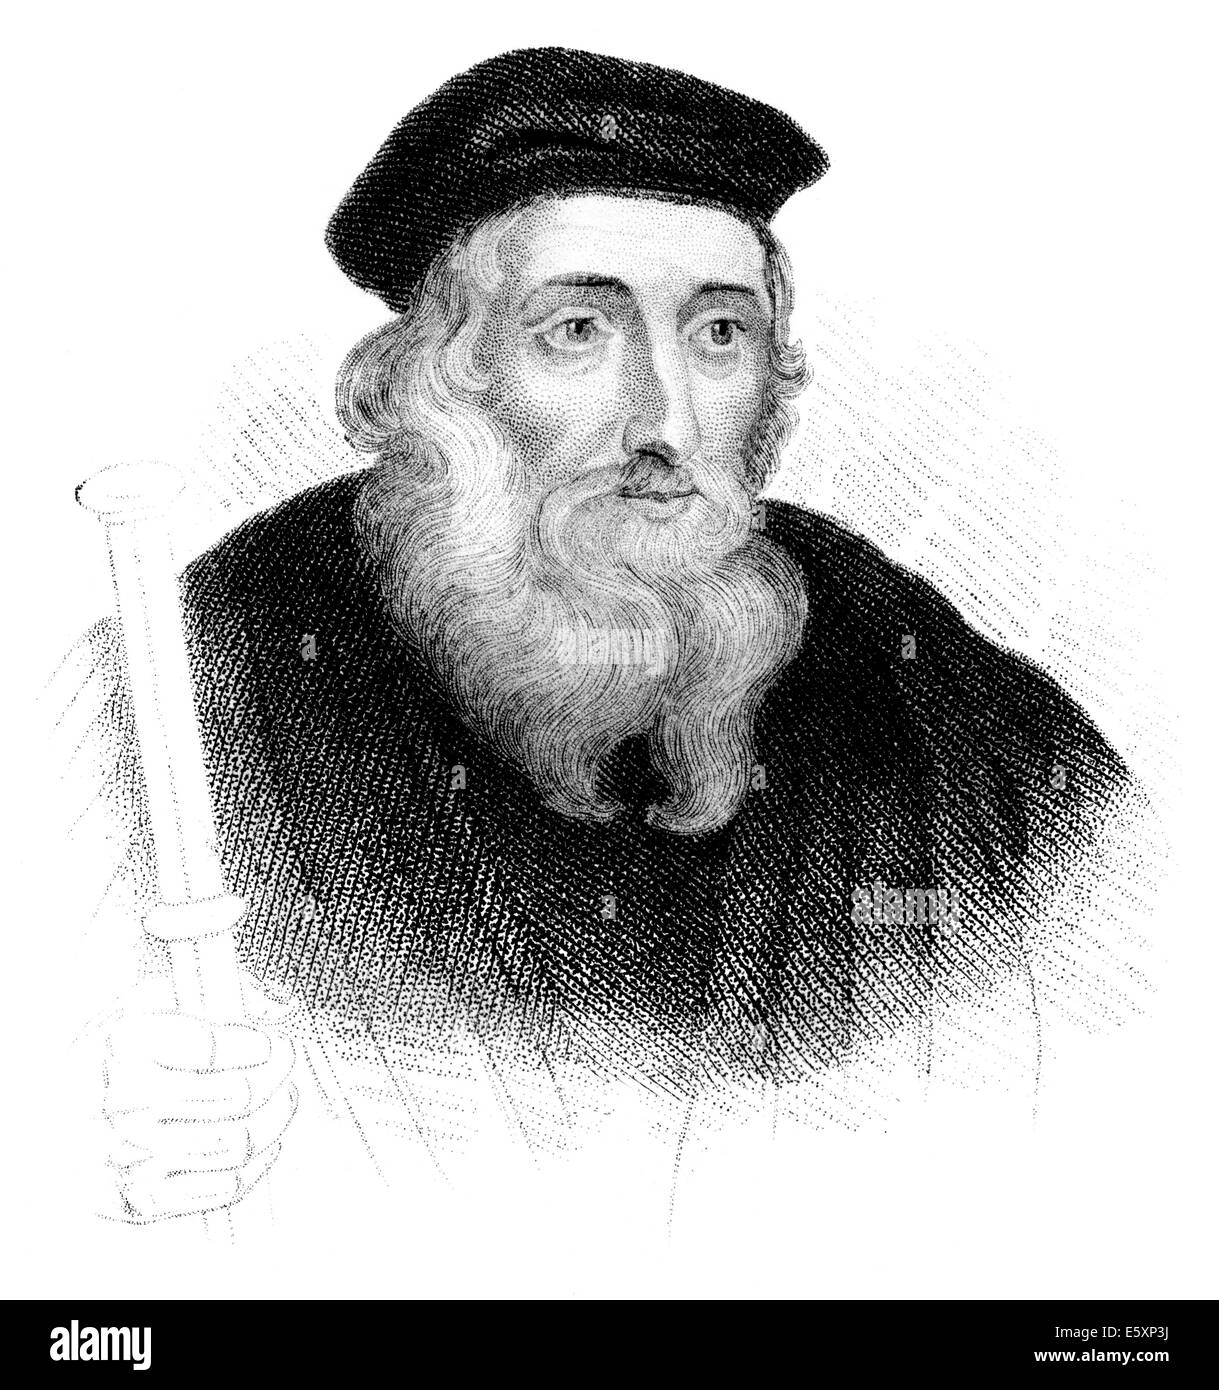 John Wycliffe or Wyclif, Wycliff, Wiclef, Wicliffe, or Wickliffe known as Doctor evangelicus, 1330 - 1384, English - Stock Image